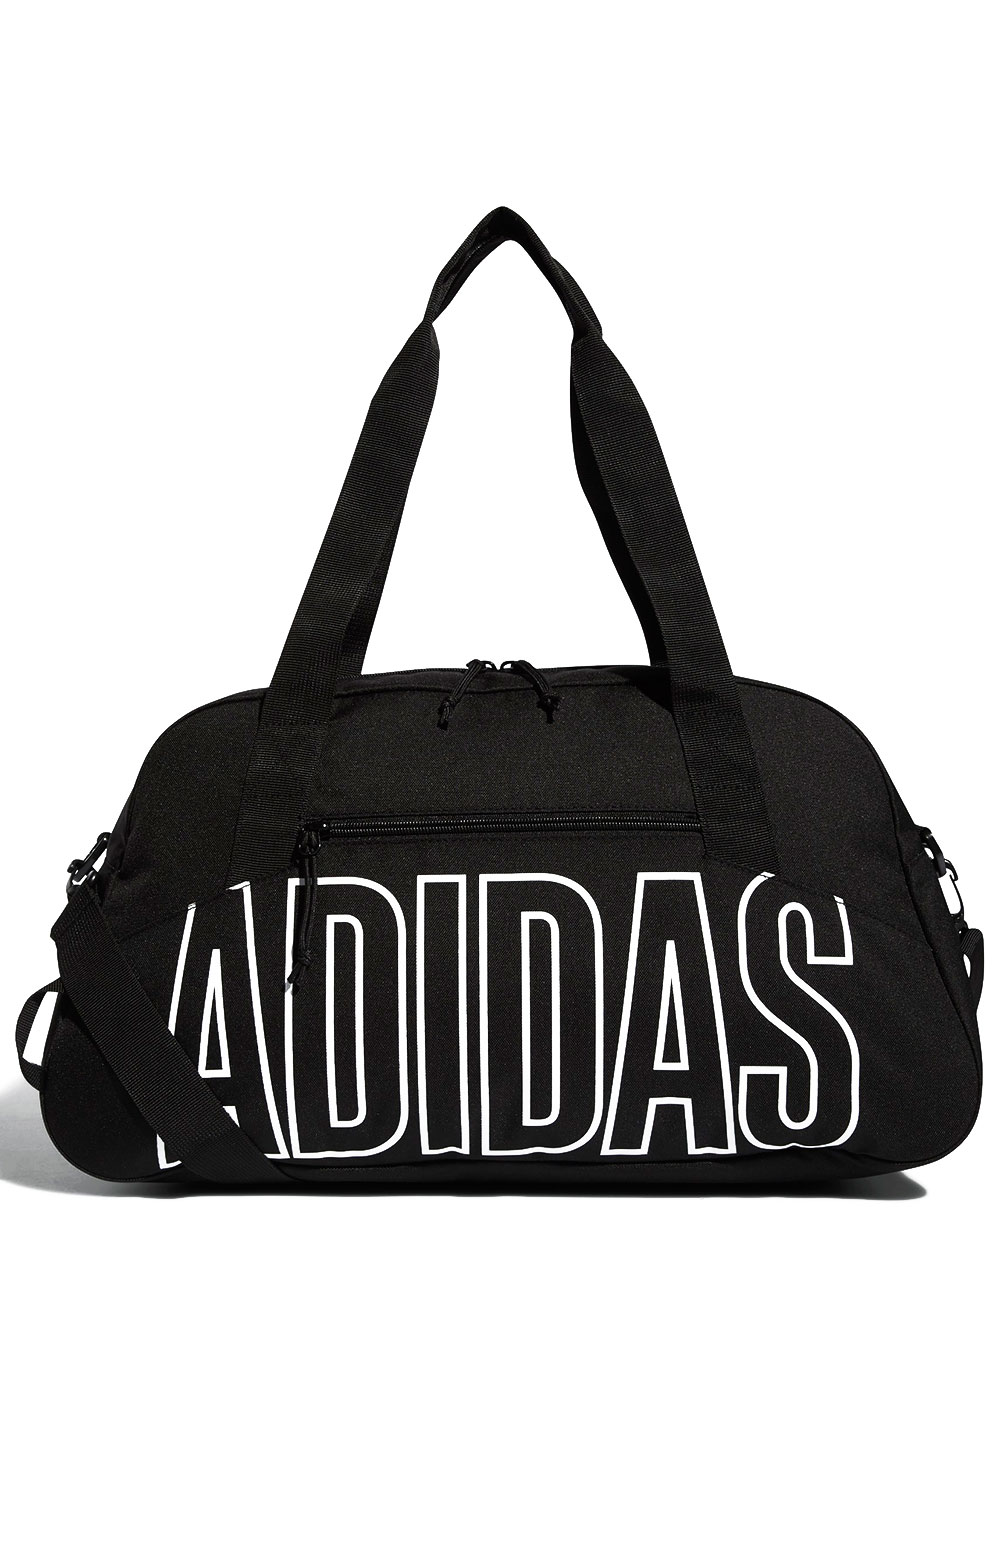 Graphic Duffel Bag - Black/White  1